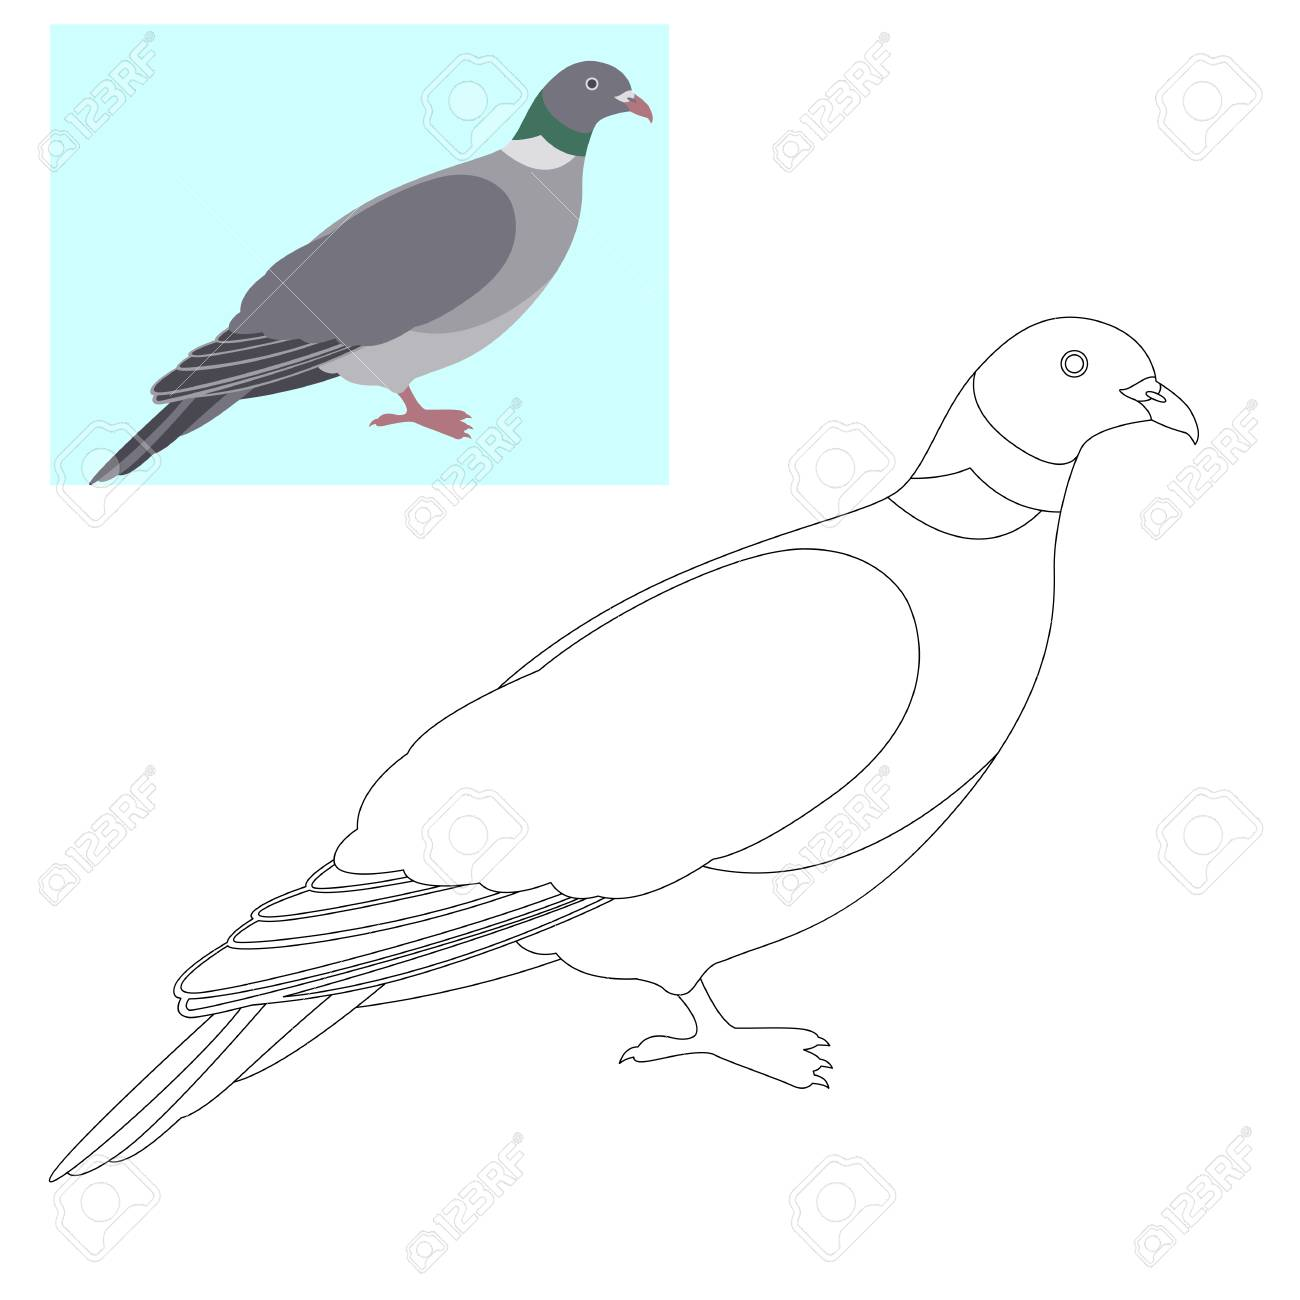 Pigeon Dove Vector Illustration Coloring Page Outline Royalty Free ...